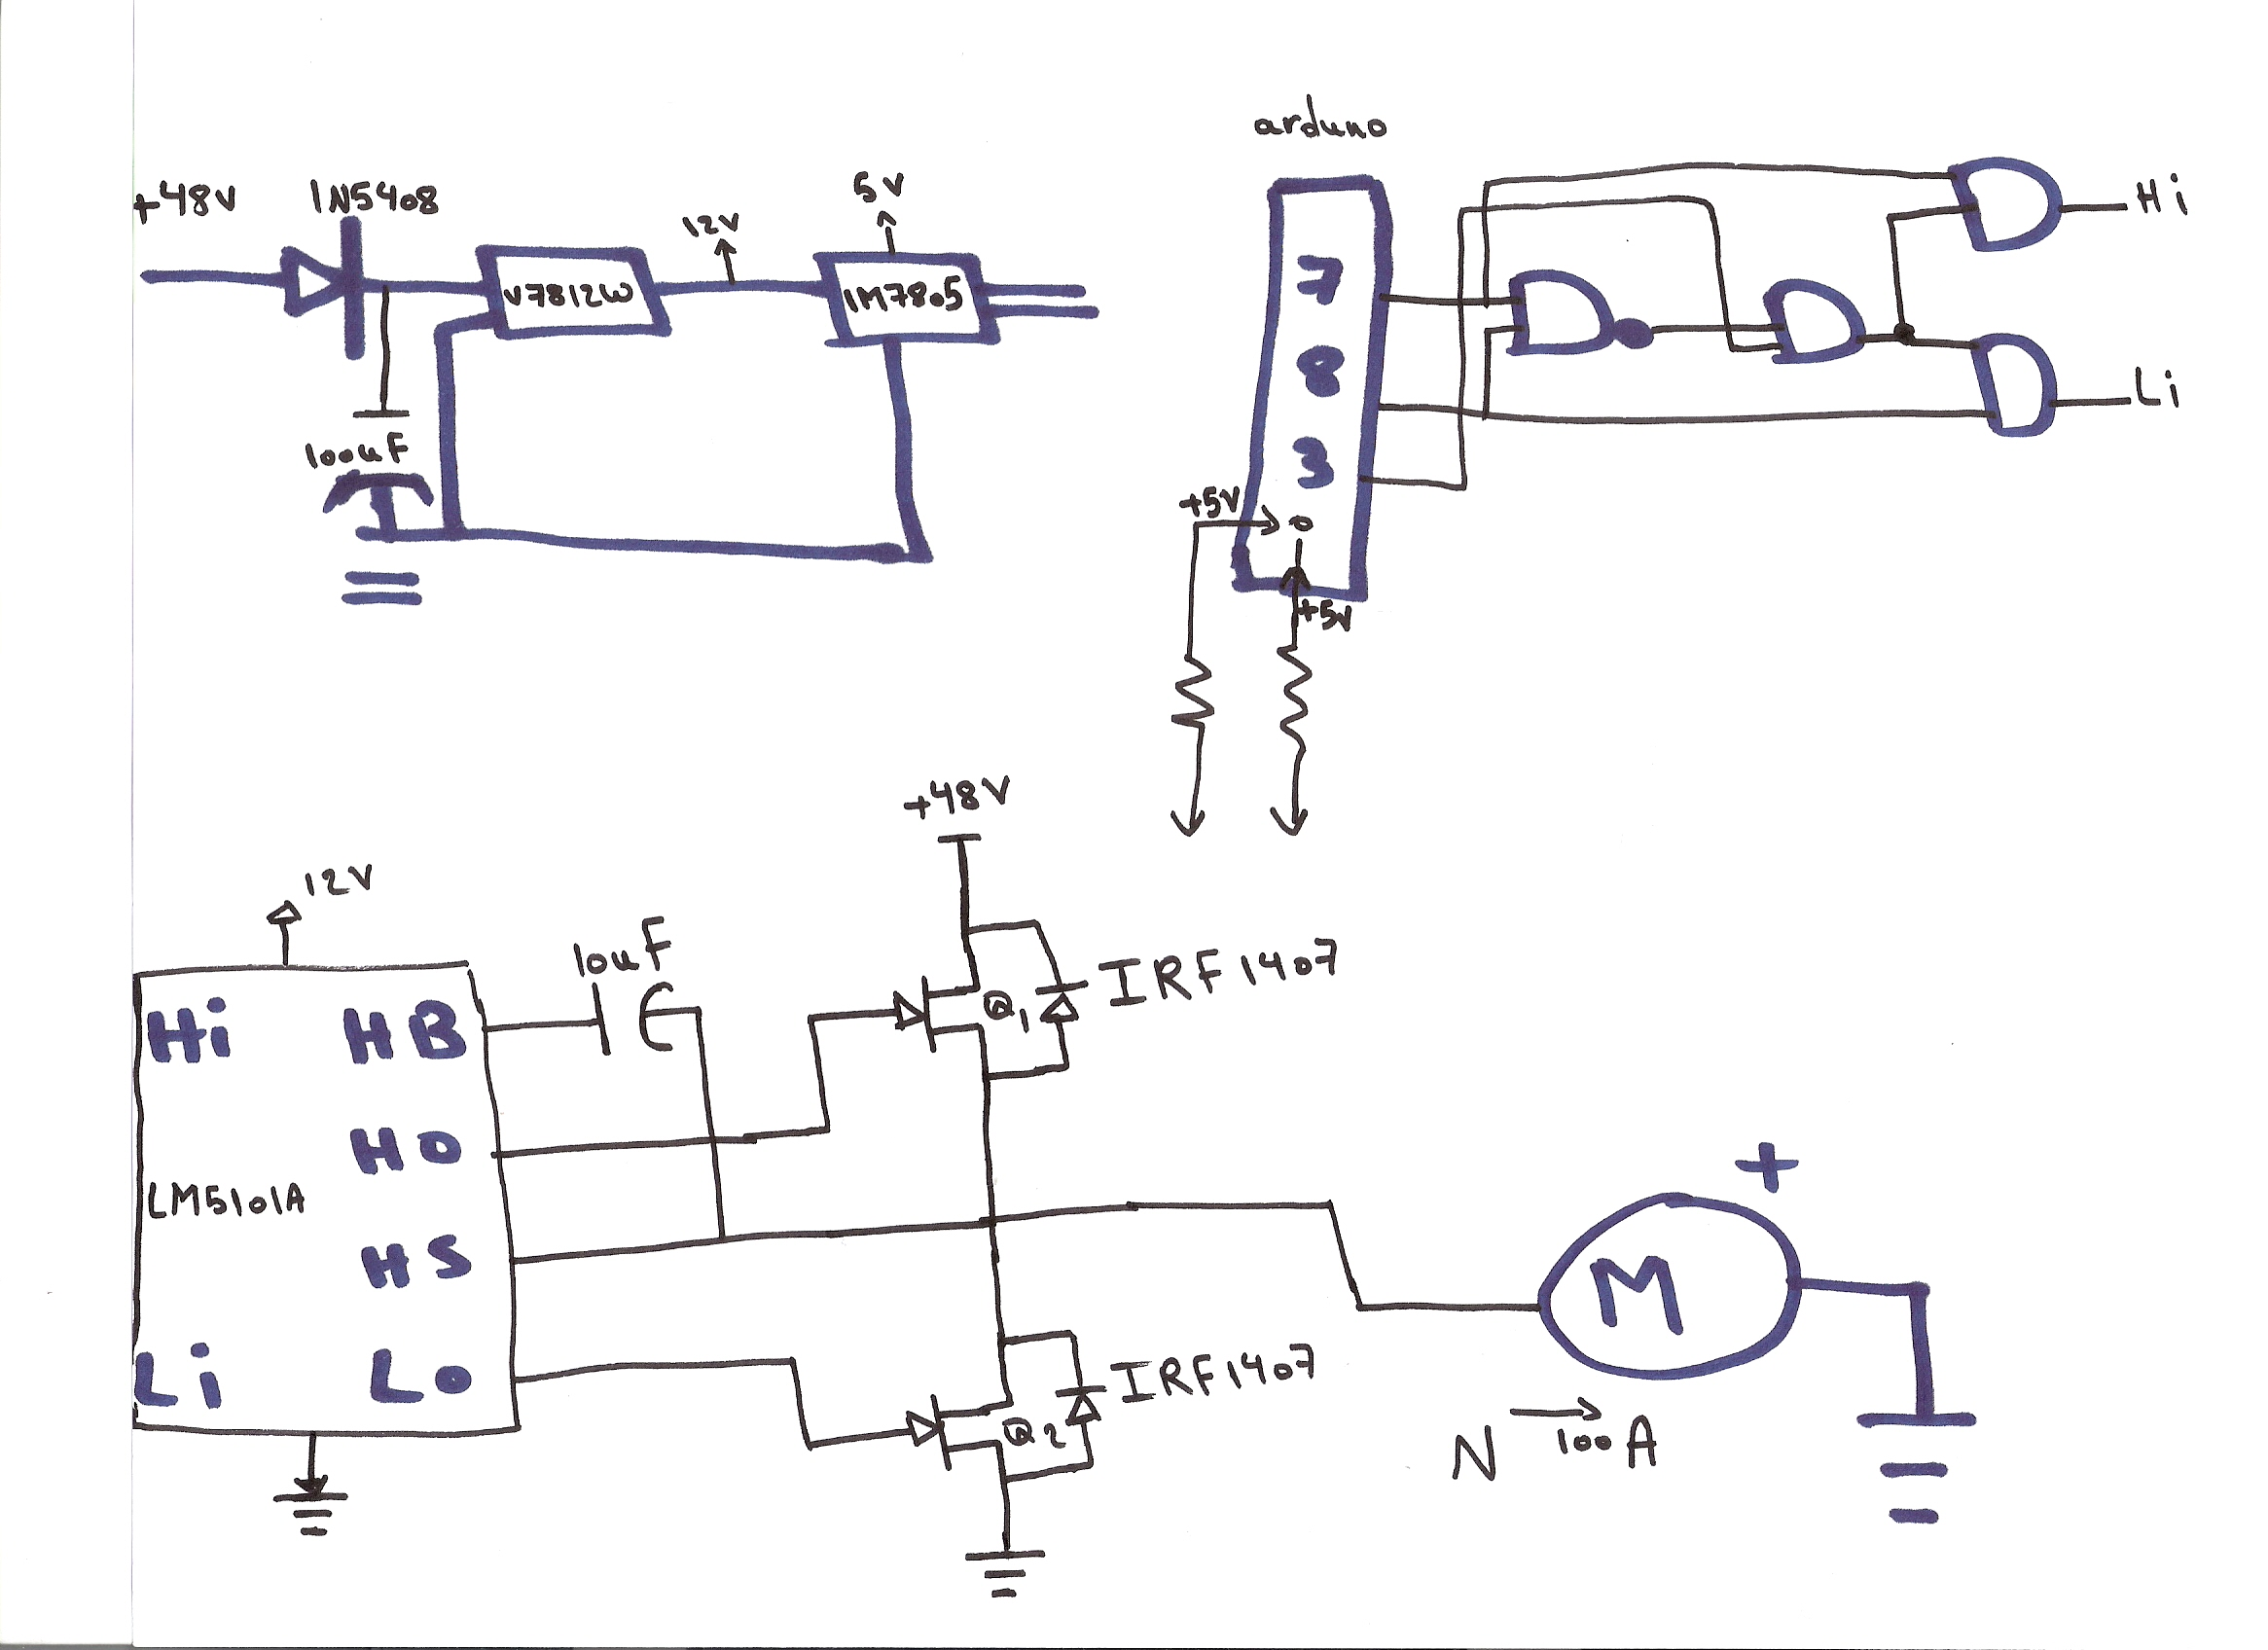 Simple Circuit Diagrams With Fruits 35 Wiring Diagram Images Electronic Components Blog Mini Trombone Sound Generator By Lm3909 5f00 Schematic Lm5101a Keeps Burning 2 Mosfet Half Bridge